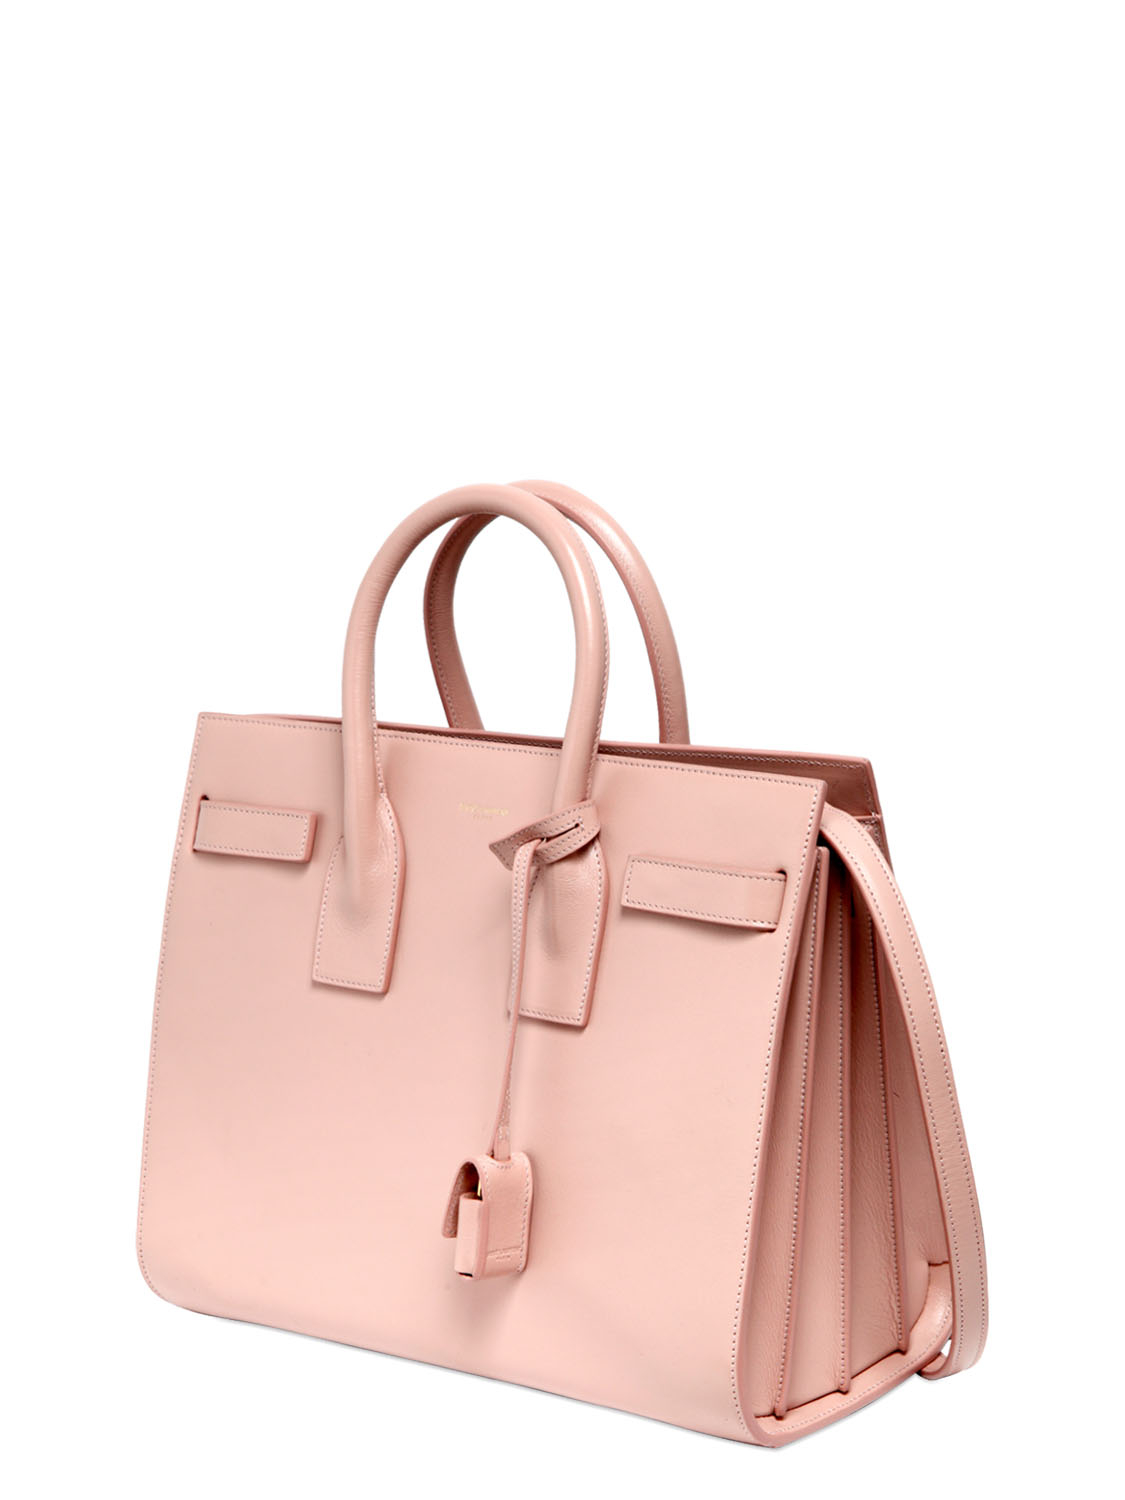 cheap yves saint laurent handbags - classic small sac de jour bag in light rose grained leather